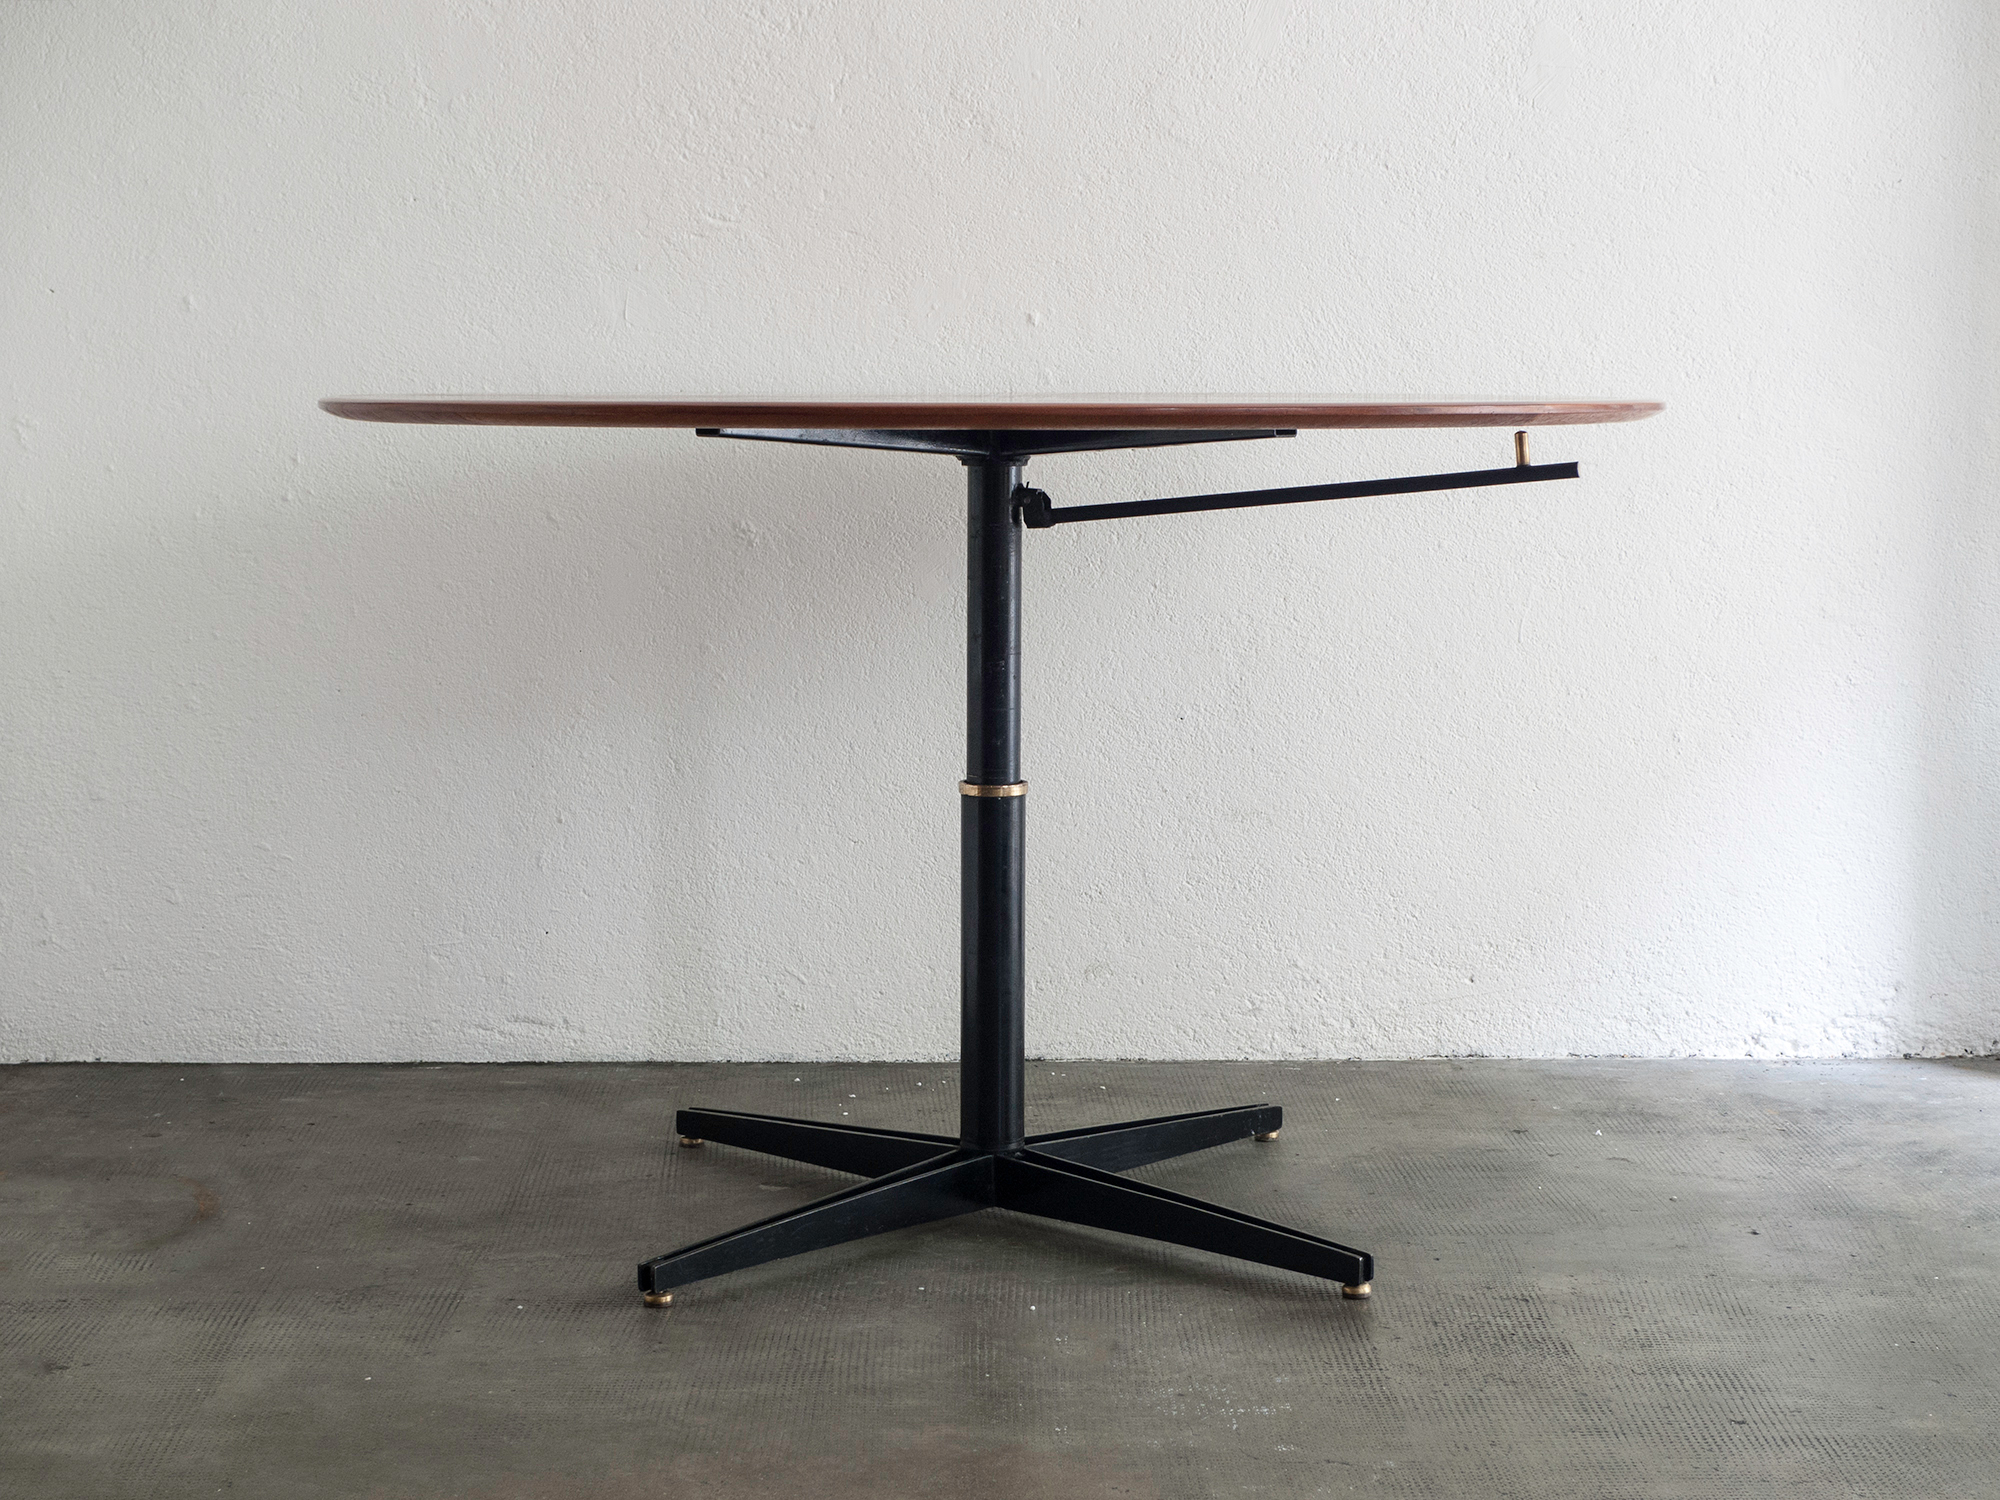 t41-adjustable-table-by-osvaldo-borsani-image-04